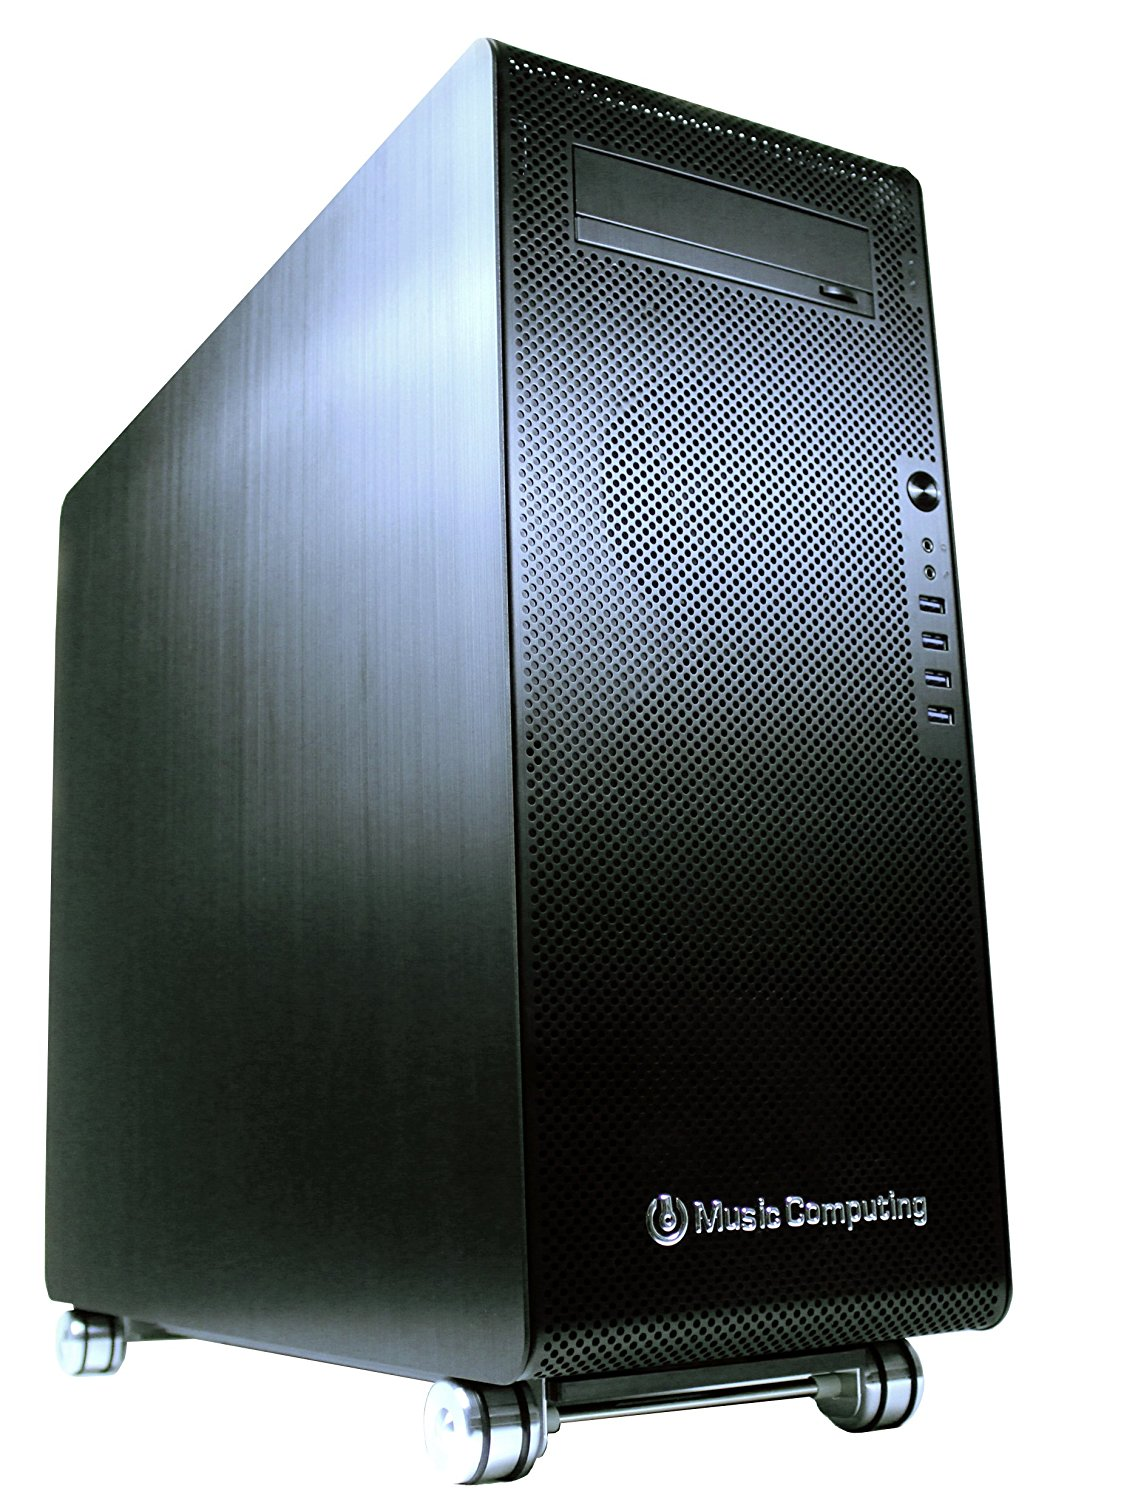 Music Computing CoreMC 2 Elite 台式工作站(E5 2690 V3*2,64G ECC、1T SSD+4T HDD、R9 390)